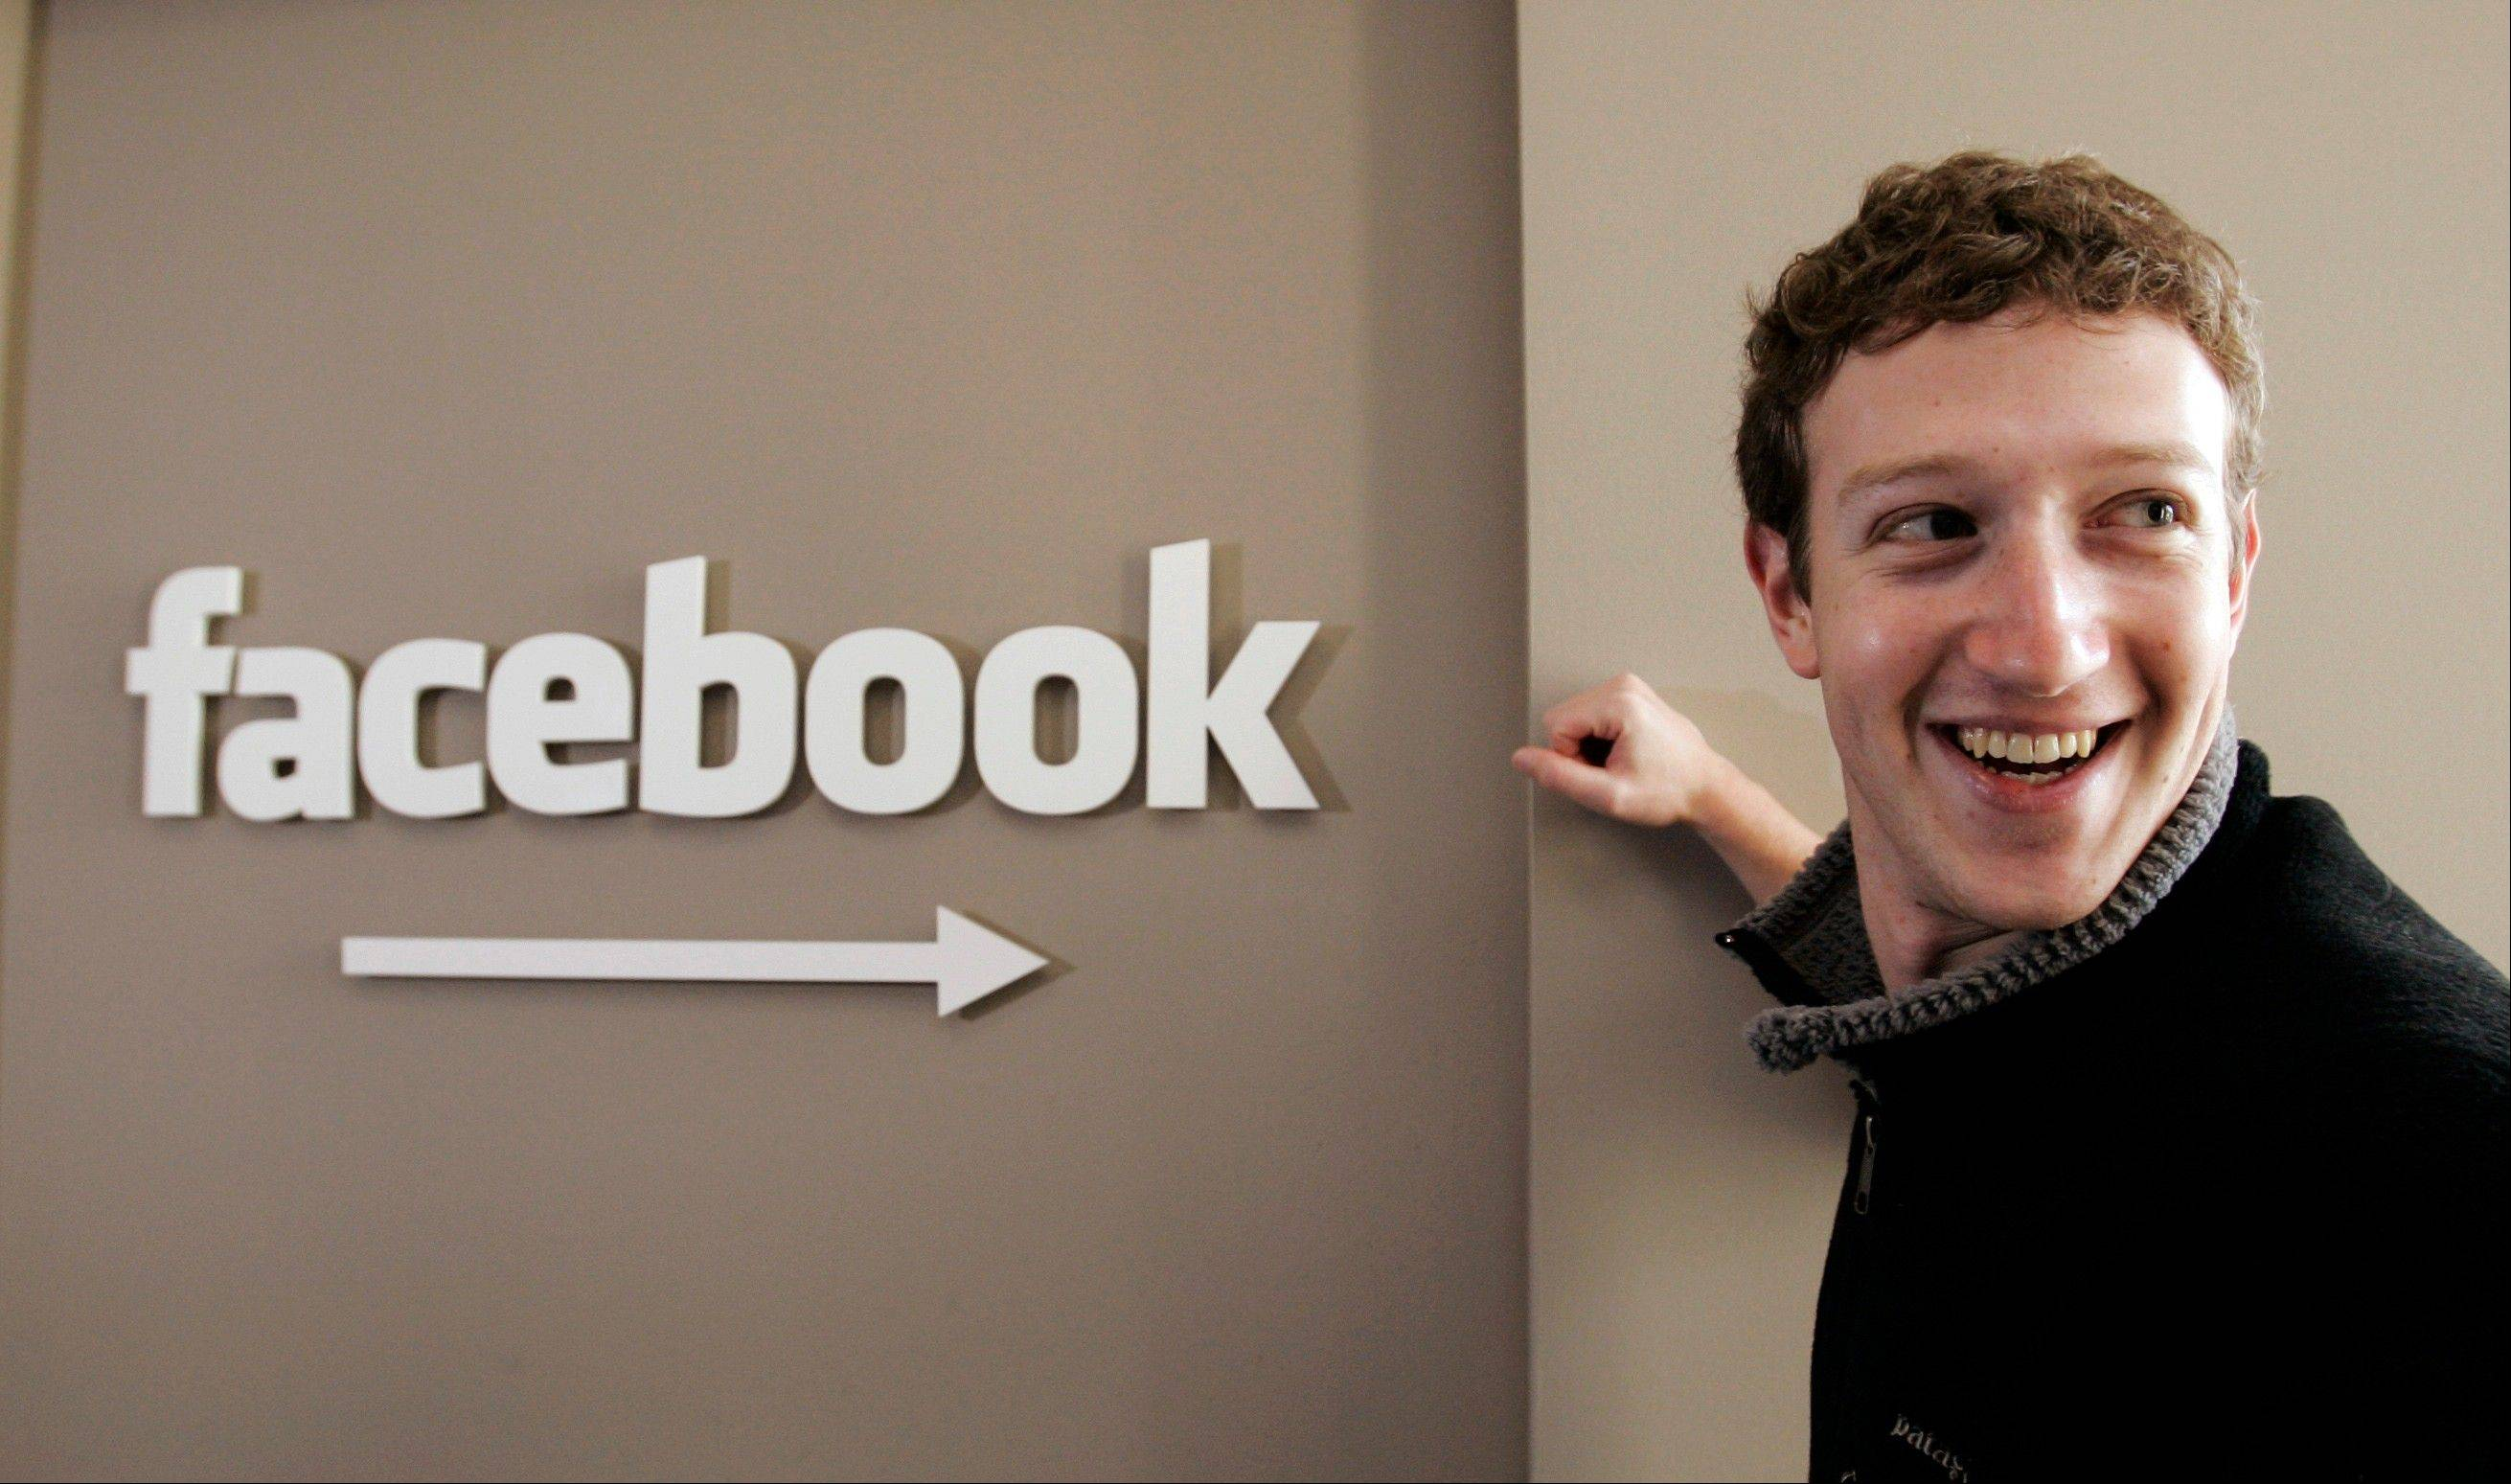 Facebook on Tuesday celebrated 10 years since Mark Zuckerberg crea